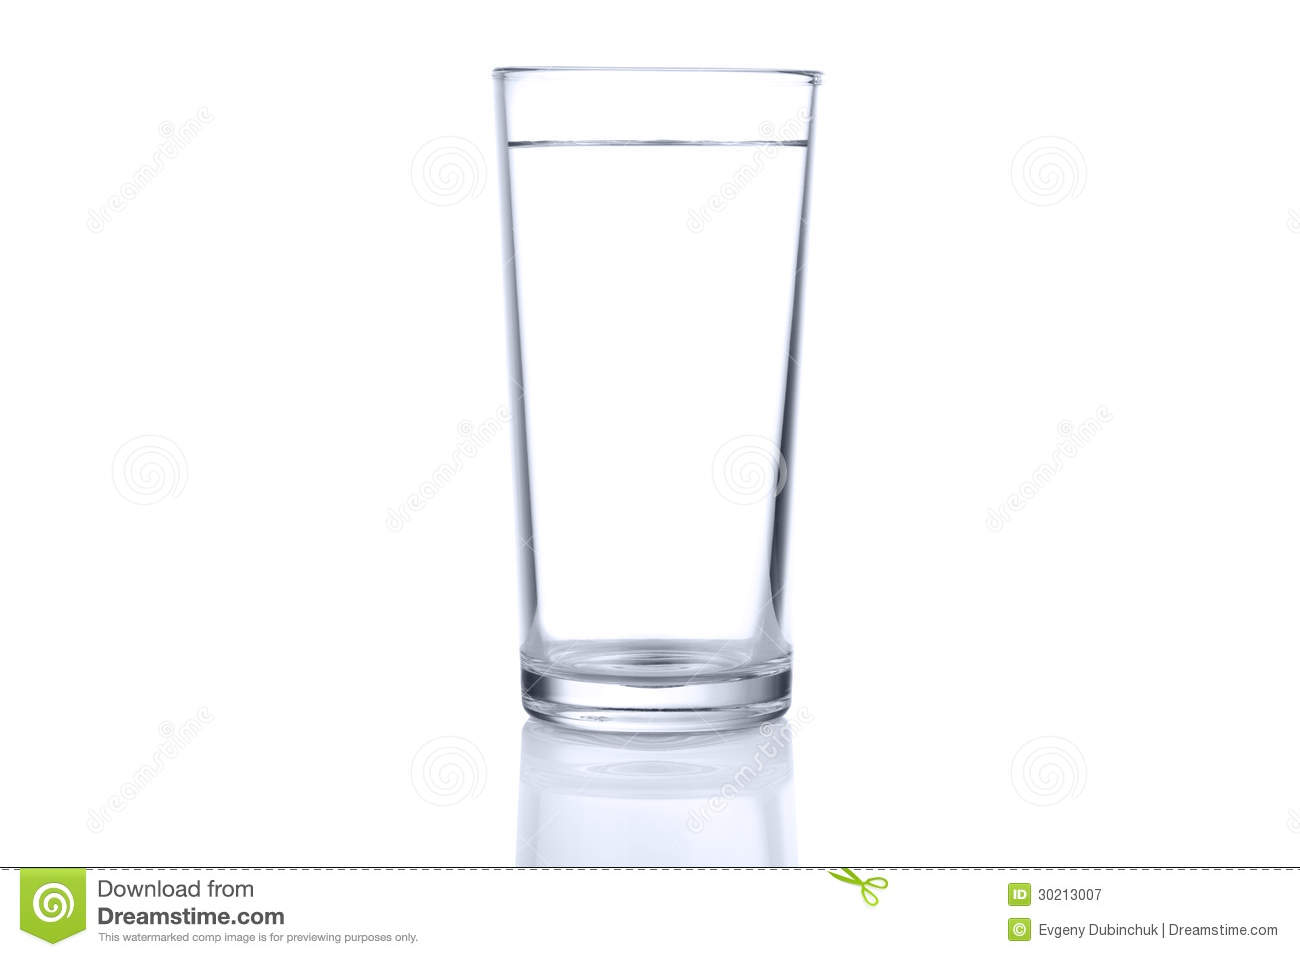 Https Www Dreamstime Com Royalty Free Stock Photography Glass Cold Still Water White Background Image30213007